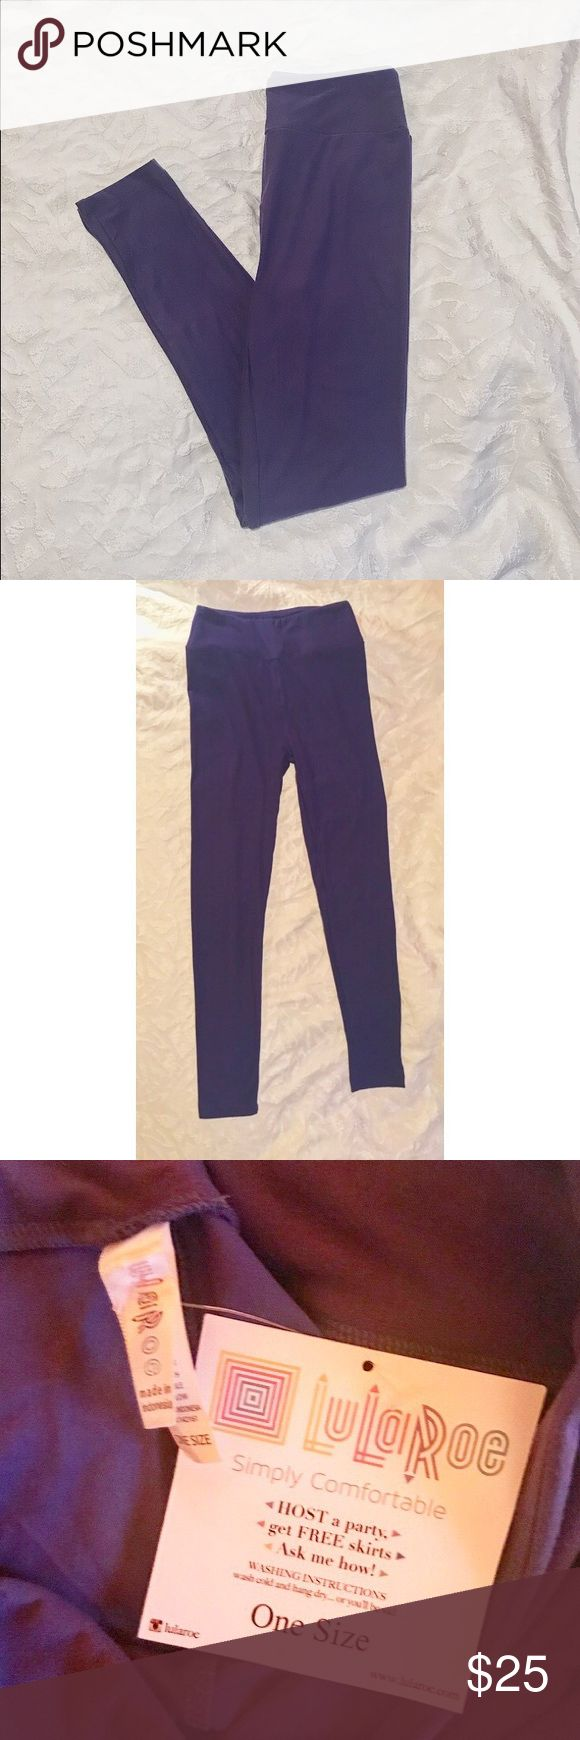 LuLaRoe Purple Leggings ✨BRAND NEW WITH TAGS ✨Material: 92% polyester and 8% spandex ✨Very comfortable! ✨Online reviews included ✨LuLaRoe guarantees that their leggings are one size fit ALL! LuLaRoe Pants Leggings